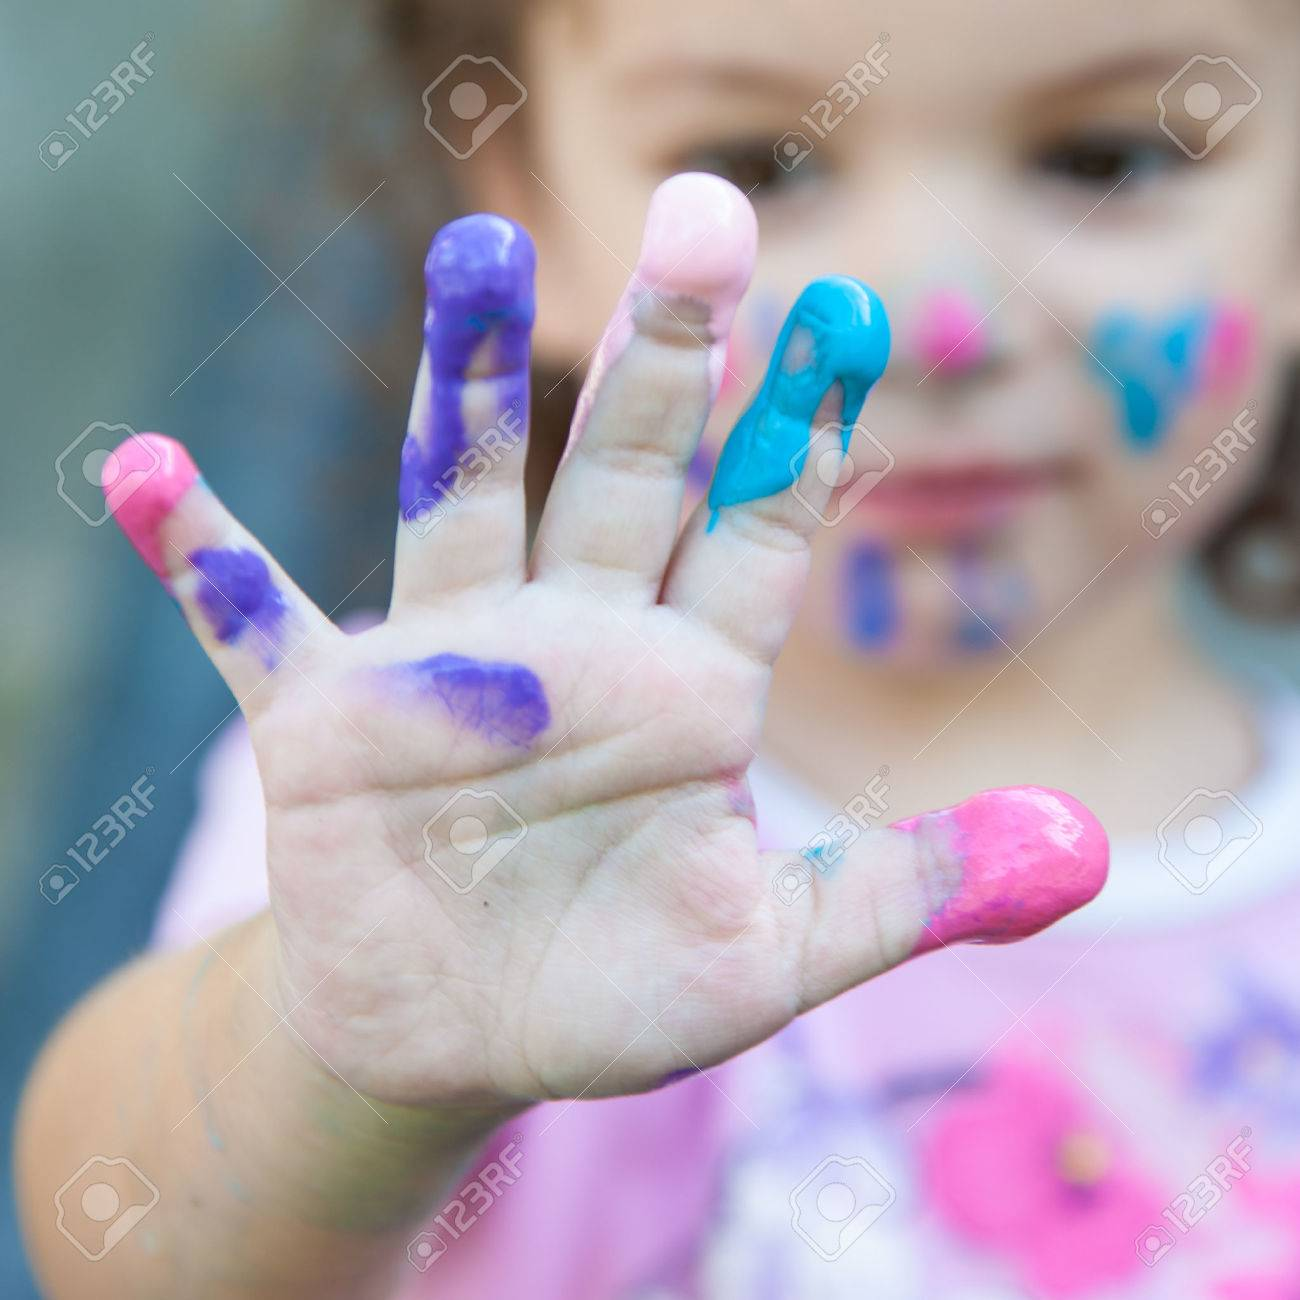 Baby girl is playing with paints outdoors - 45934539